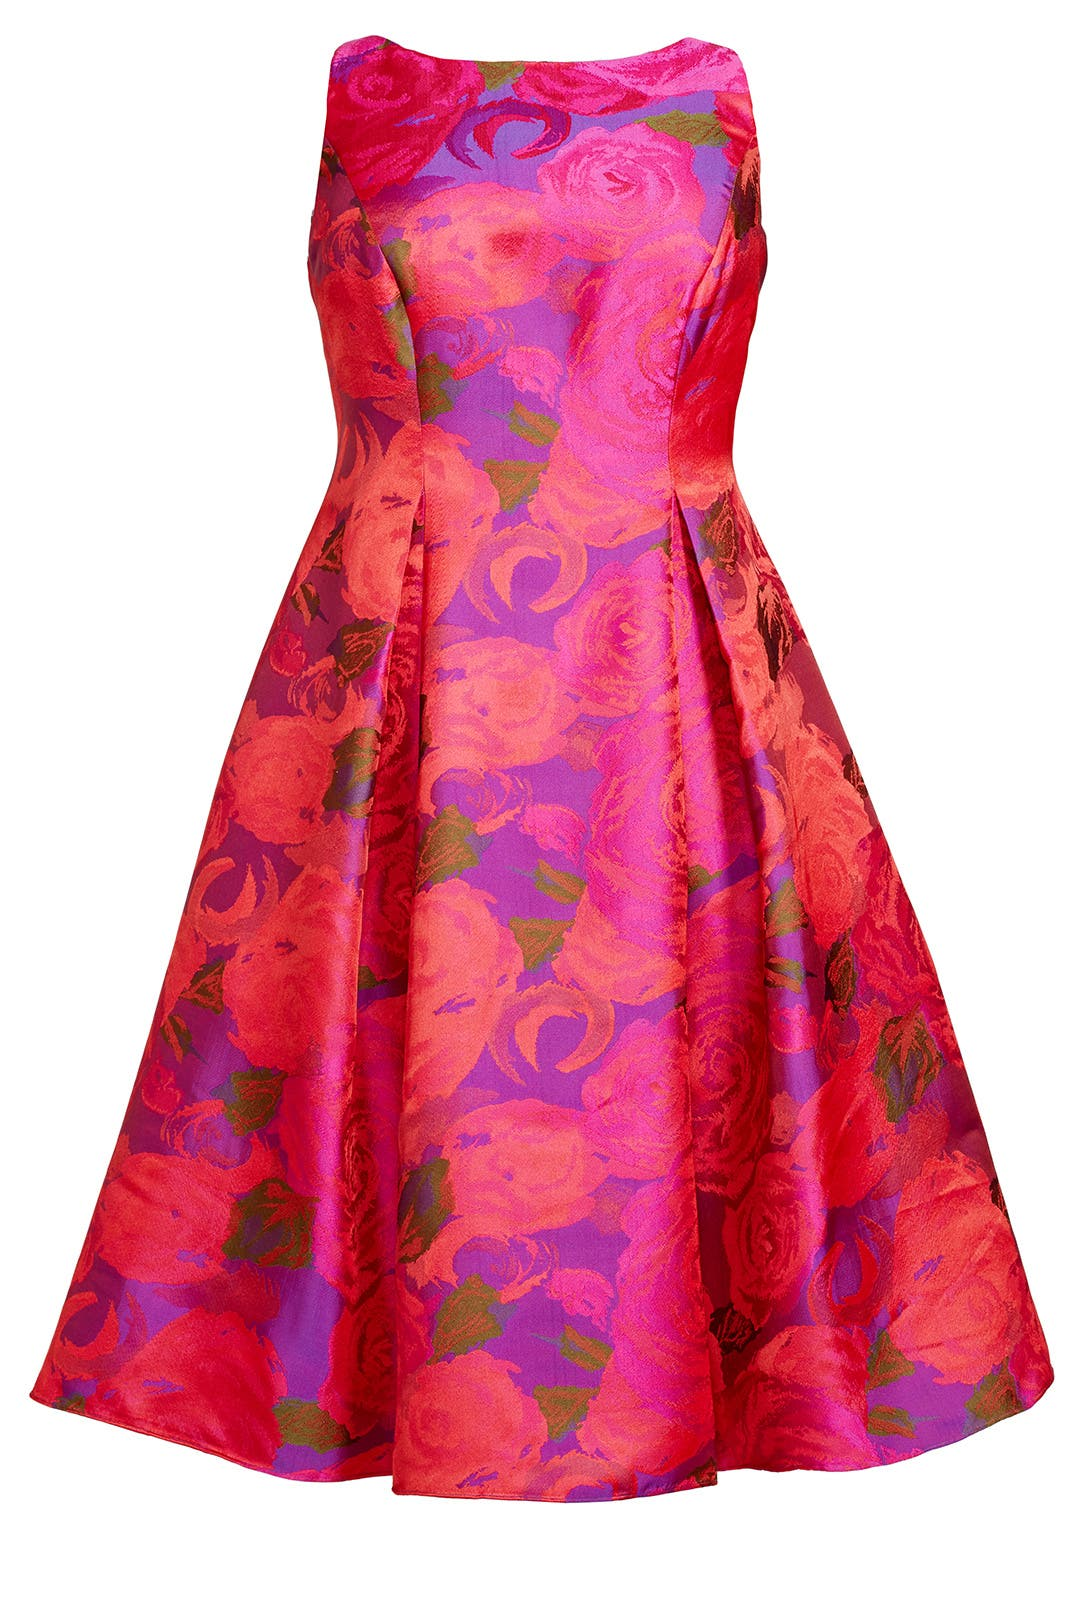 Electric Blossom Dress by Adrianna Papell for $40 | Rent the Runway